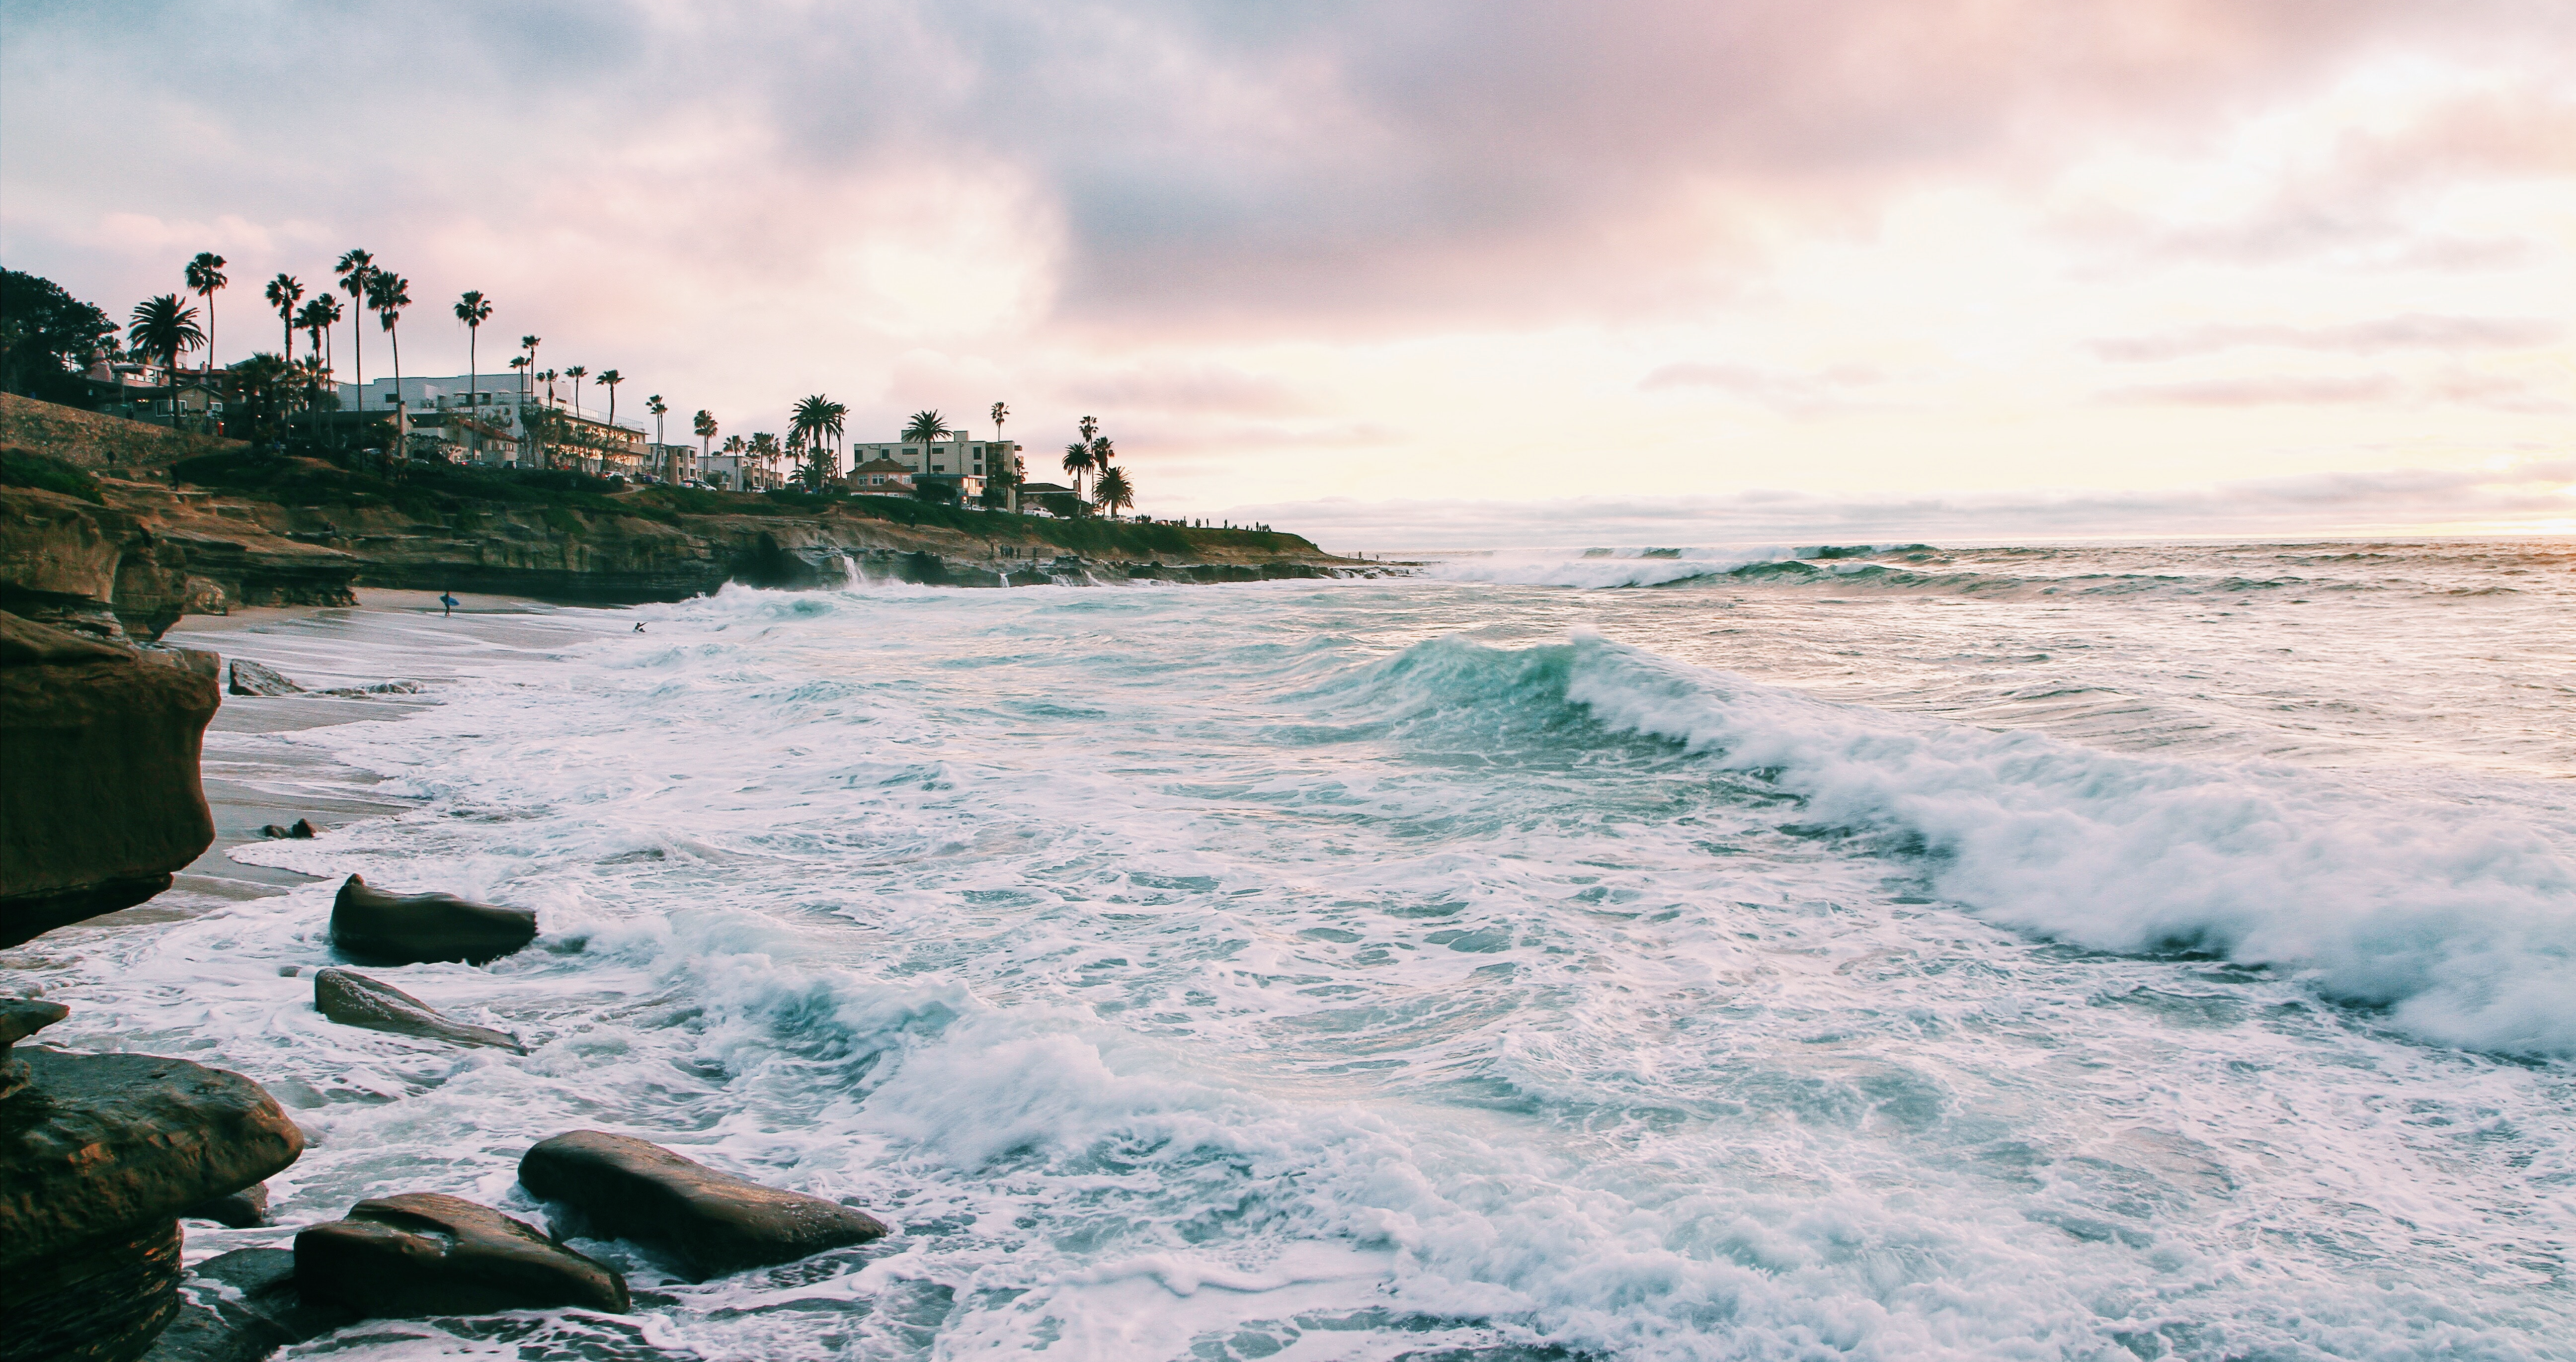 sea waves crashing on san diego shore during golden hour